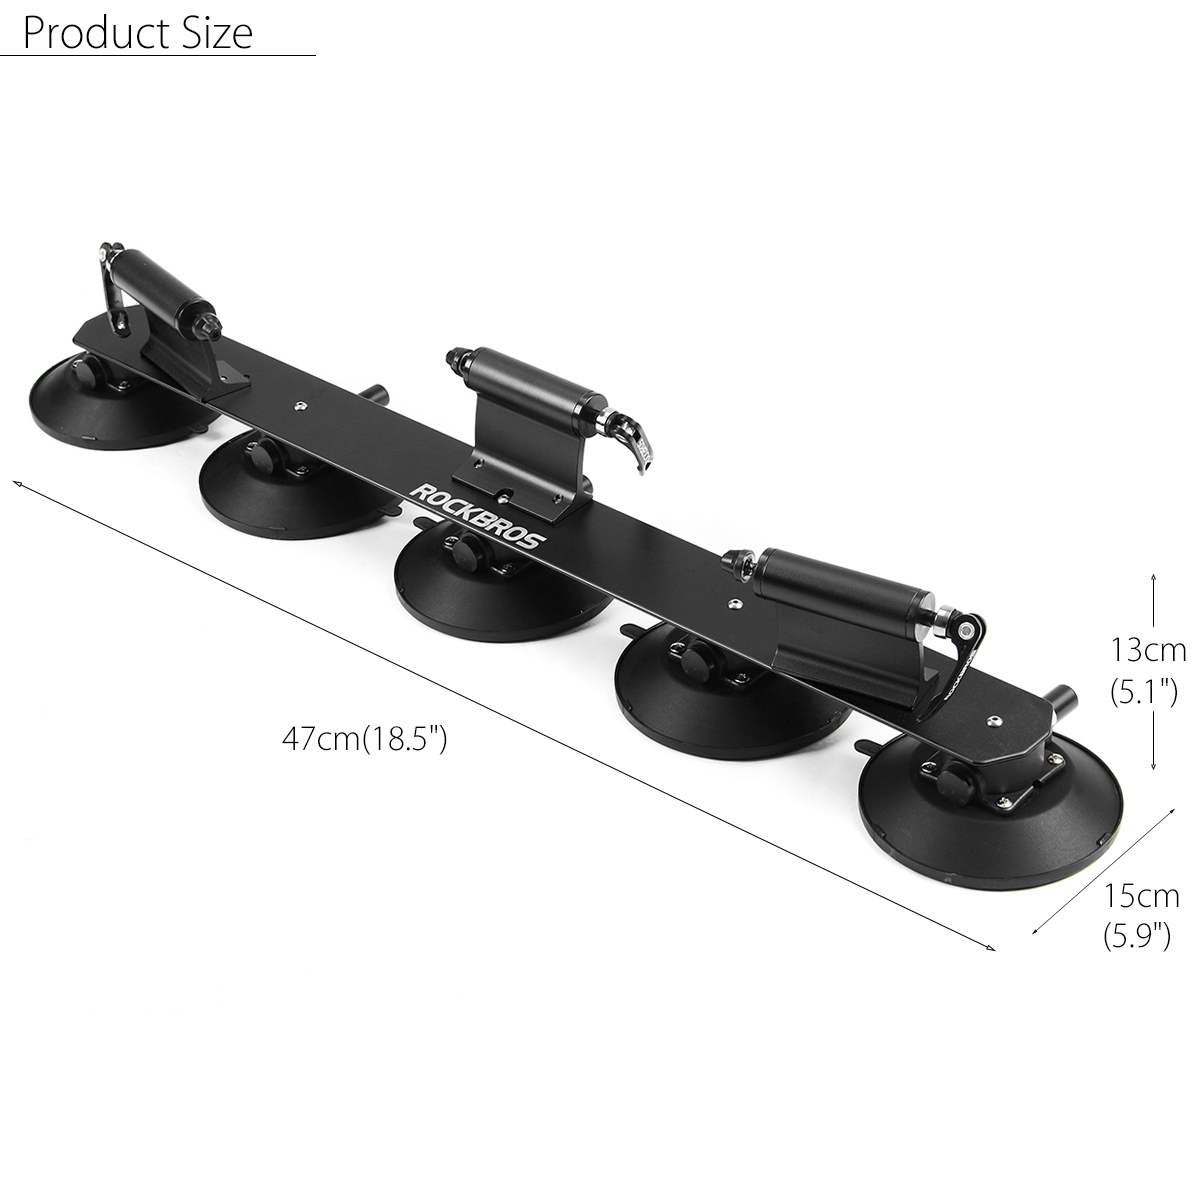 RockBros 3 Bikes Bicycle Carrier Suction Rooftop Rack Quick Installation